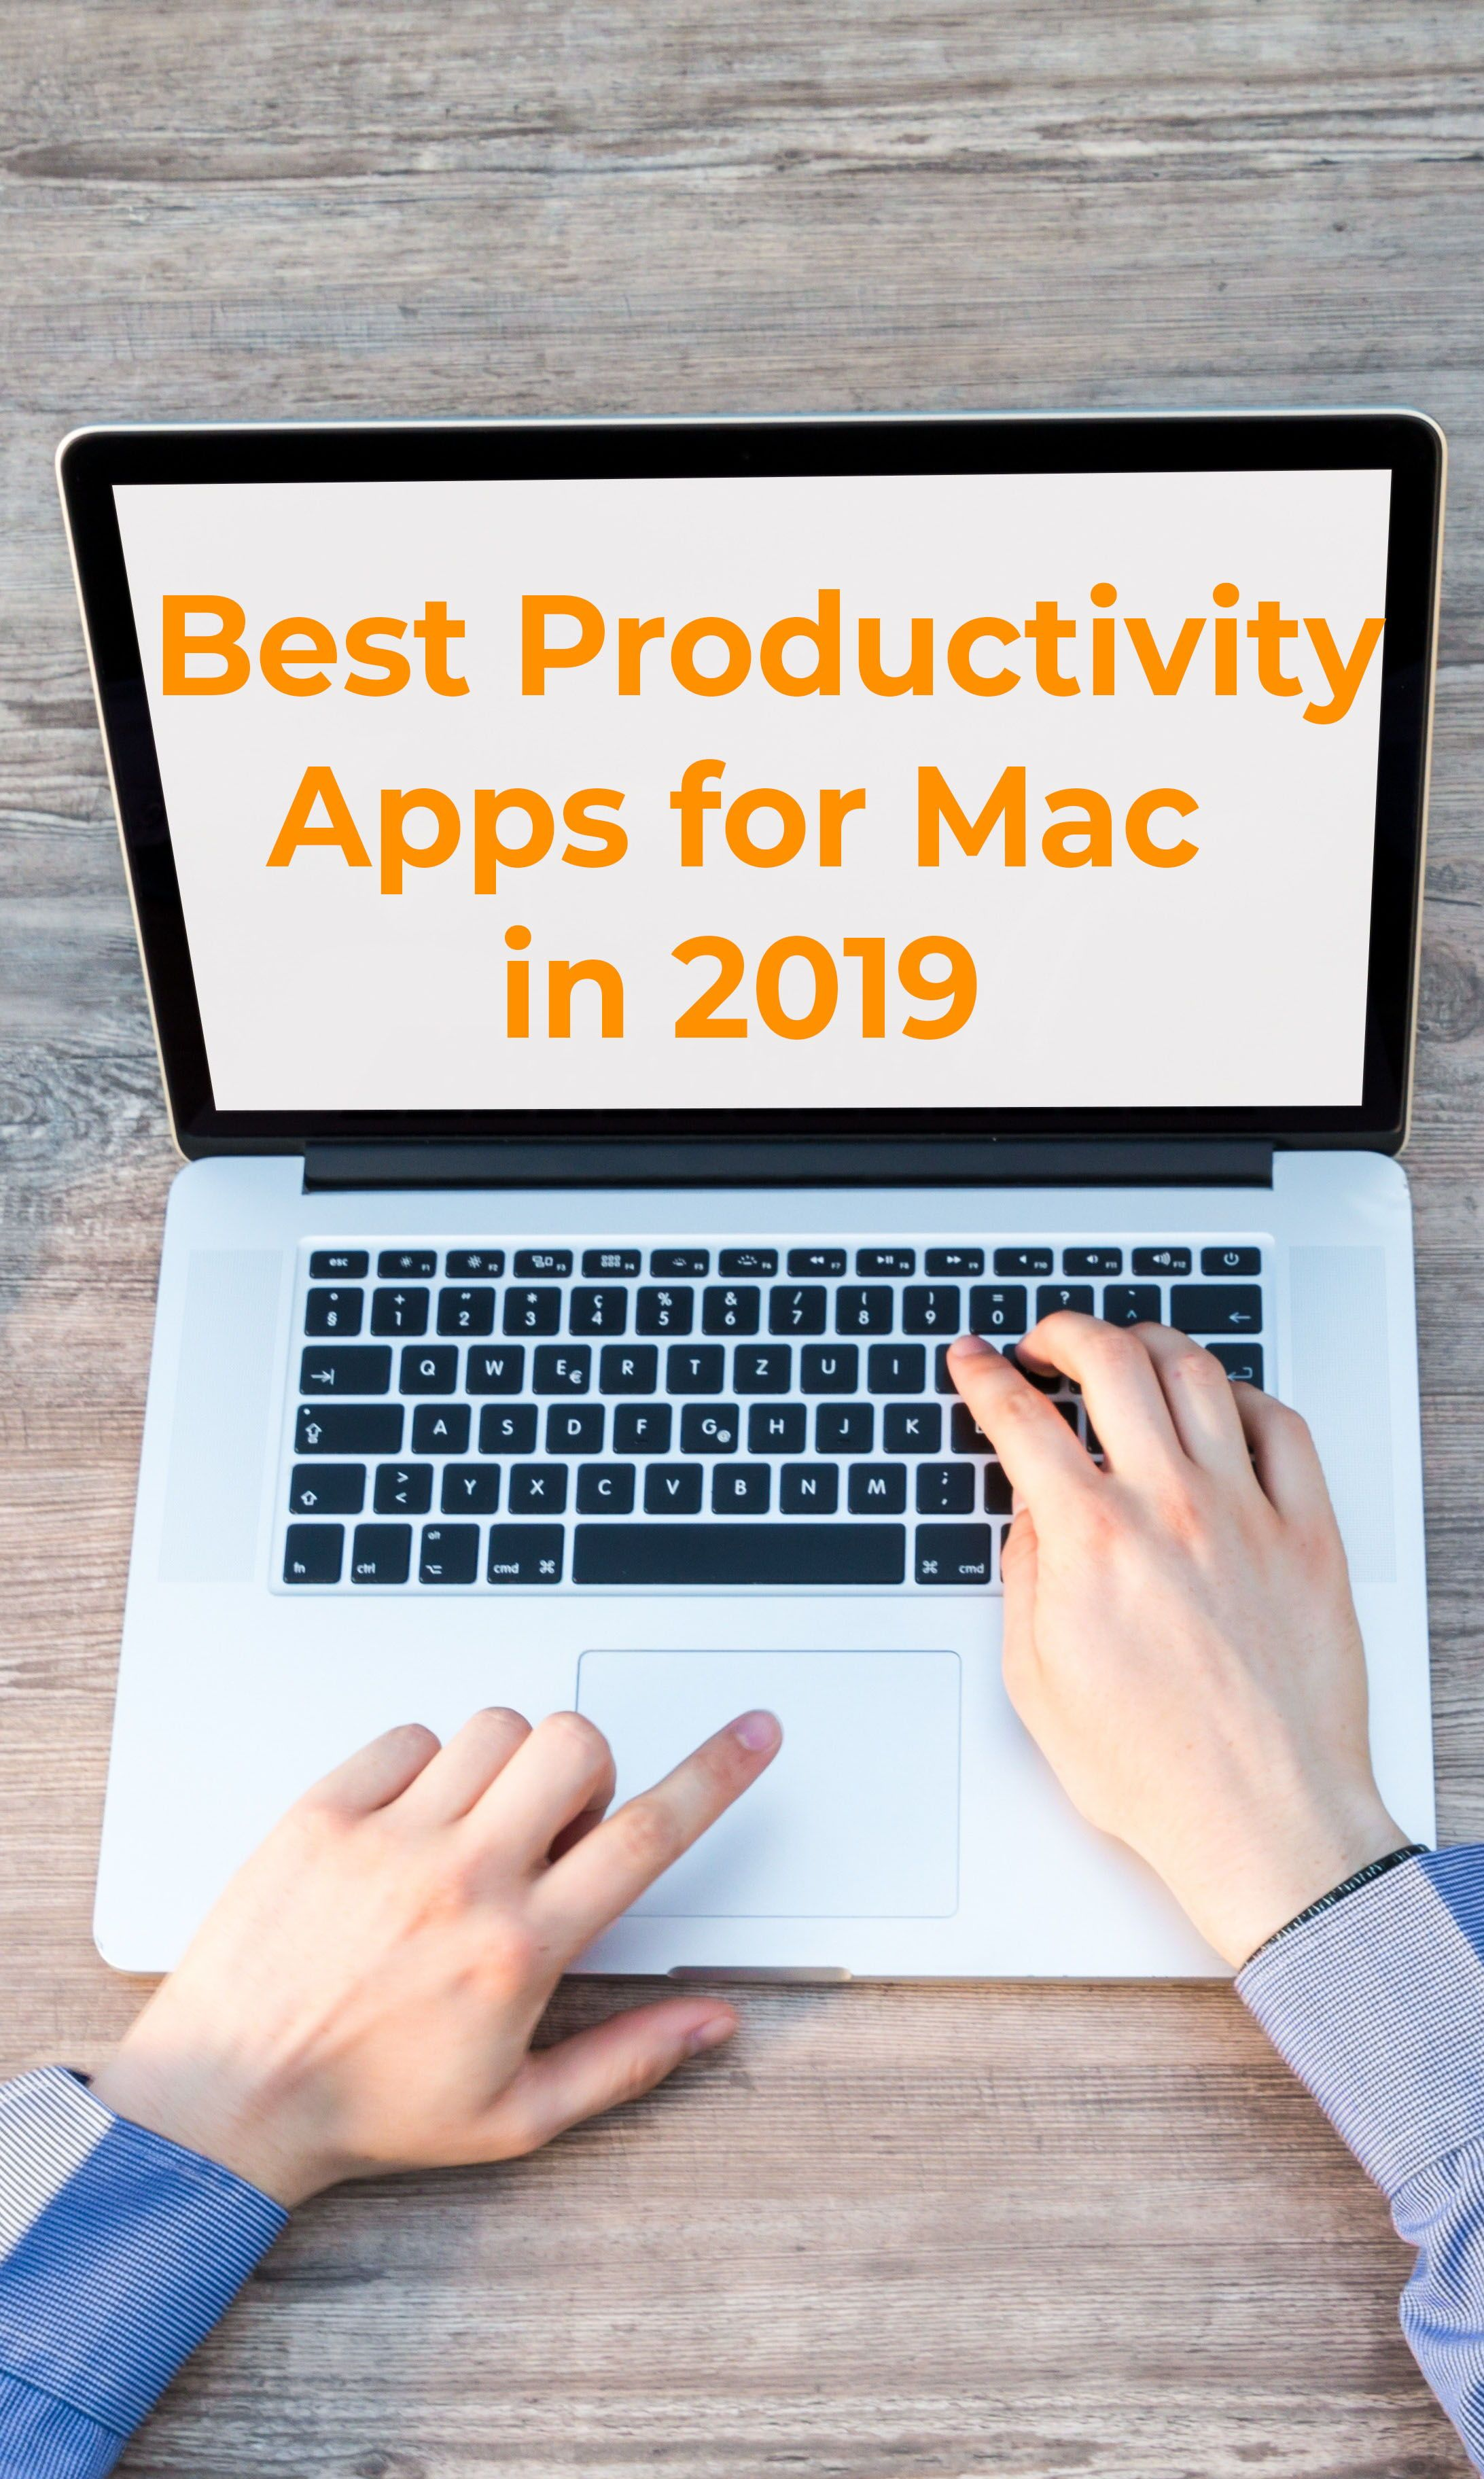 27 Best Apps for Mac in 2019 - Here is a list of the best